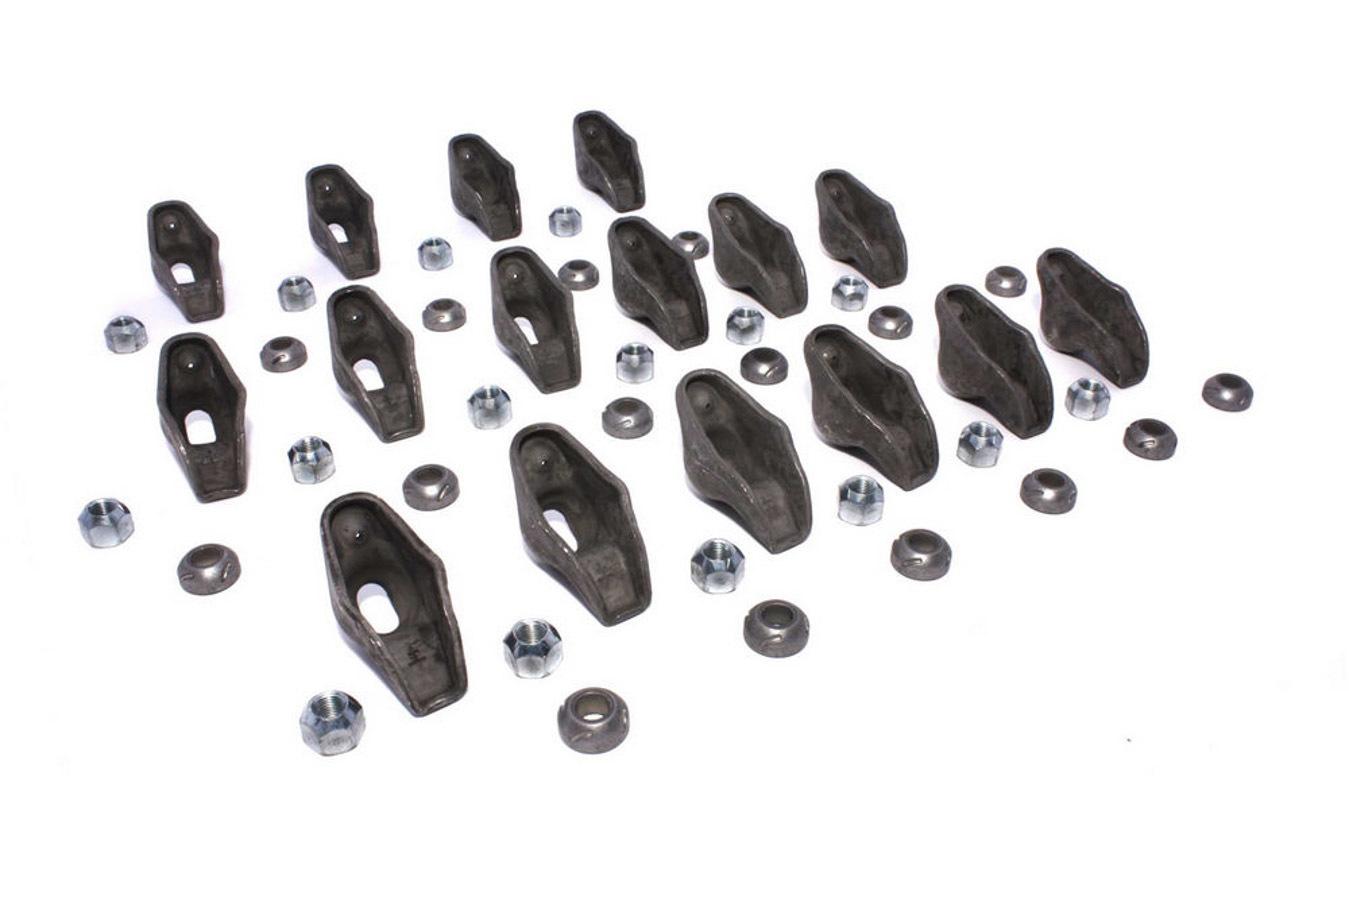 Comp Cams 1217-16 Rocker Arm, High Energy, 3/8 in Stud Mount, 1.50 Ratio, OEM / Long Slot, Nitride Steel, Small Block Chevy, Set of 16